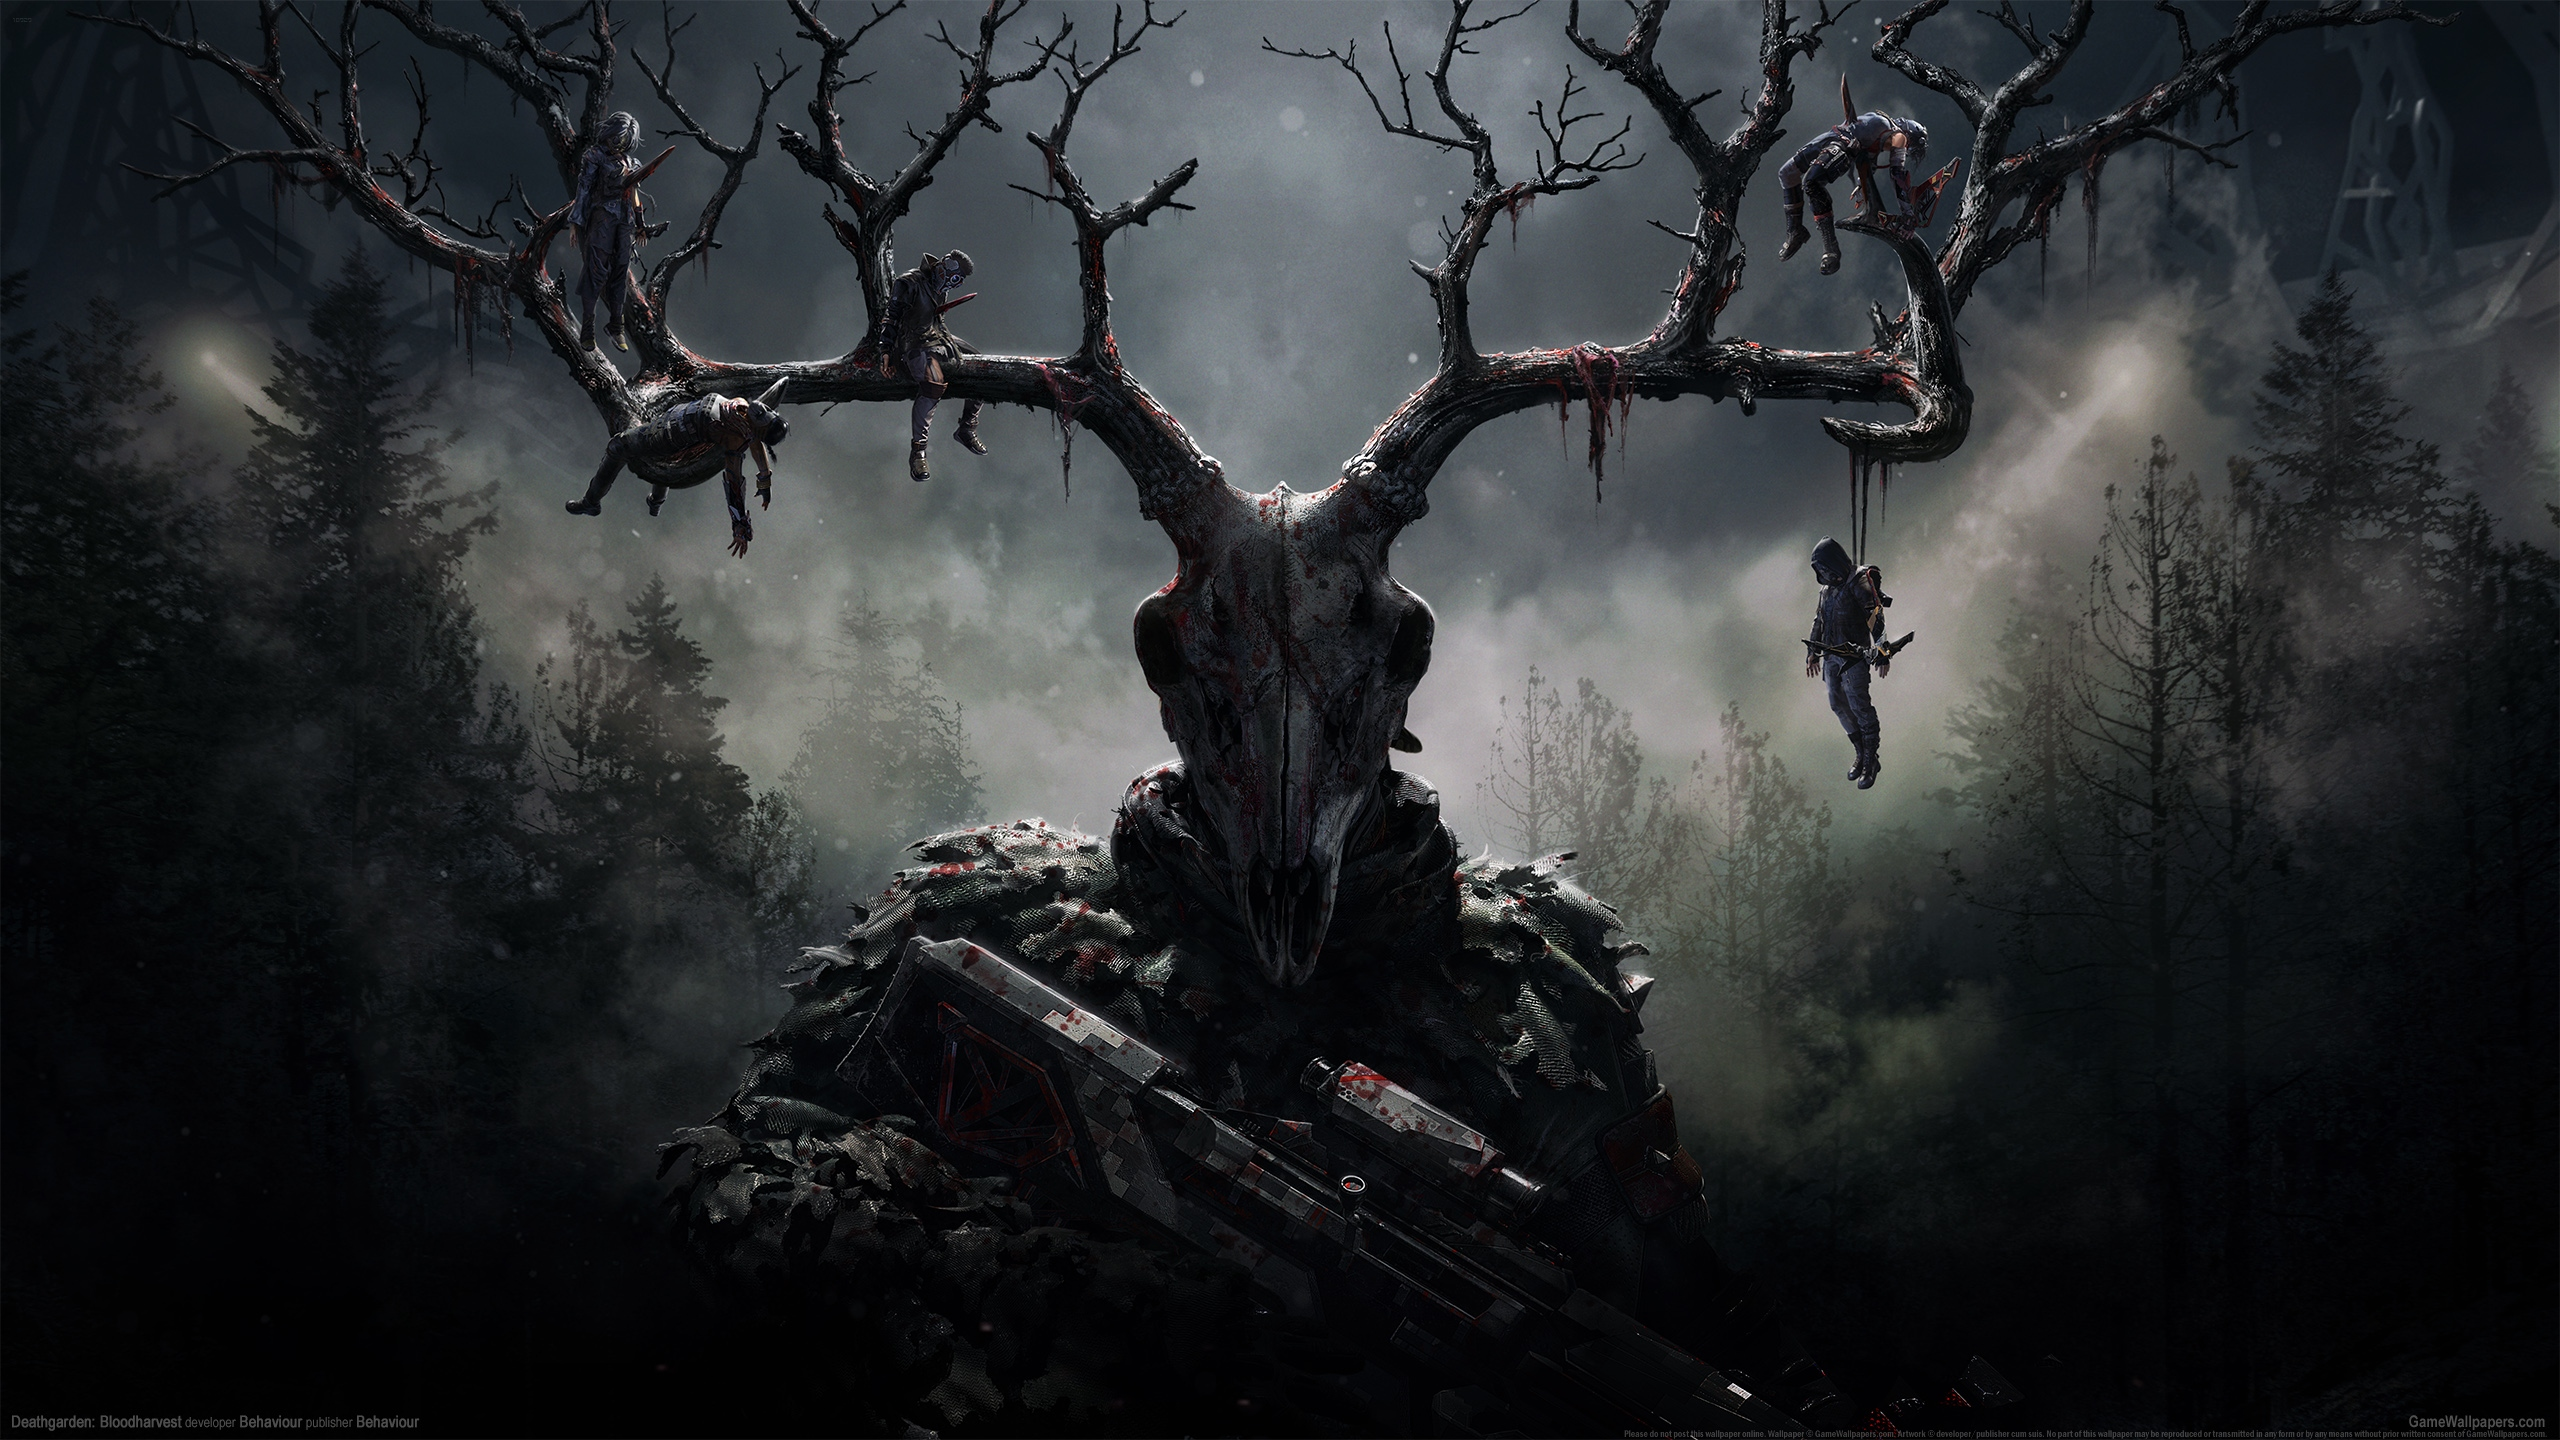 Deathgarden: Bloodharvest 2560x1440 wallpaper or background 01